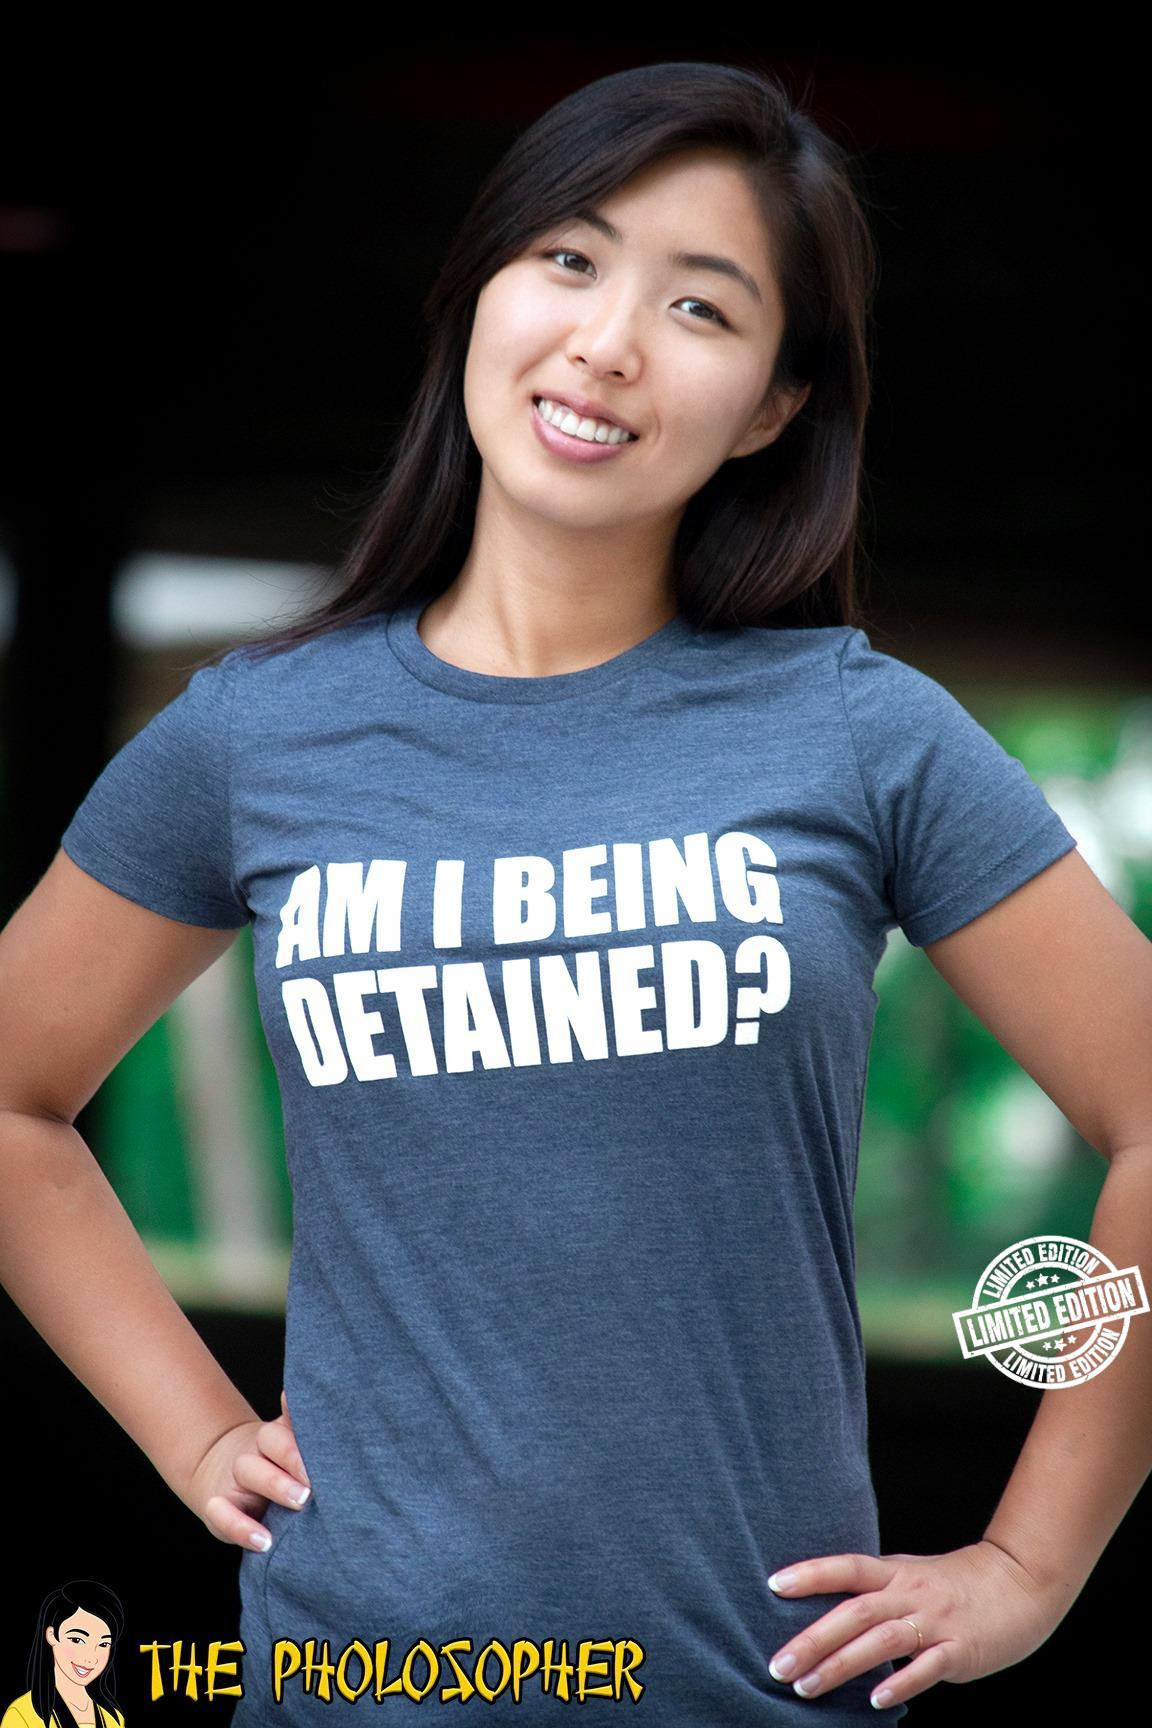 Am I being detained shirt